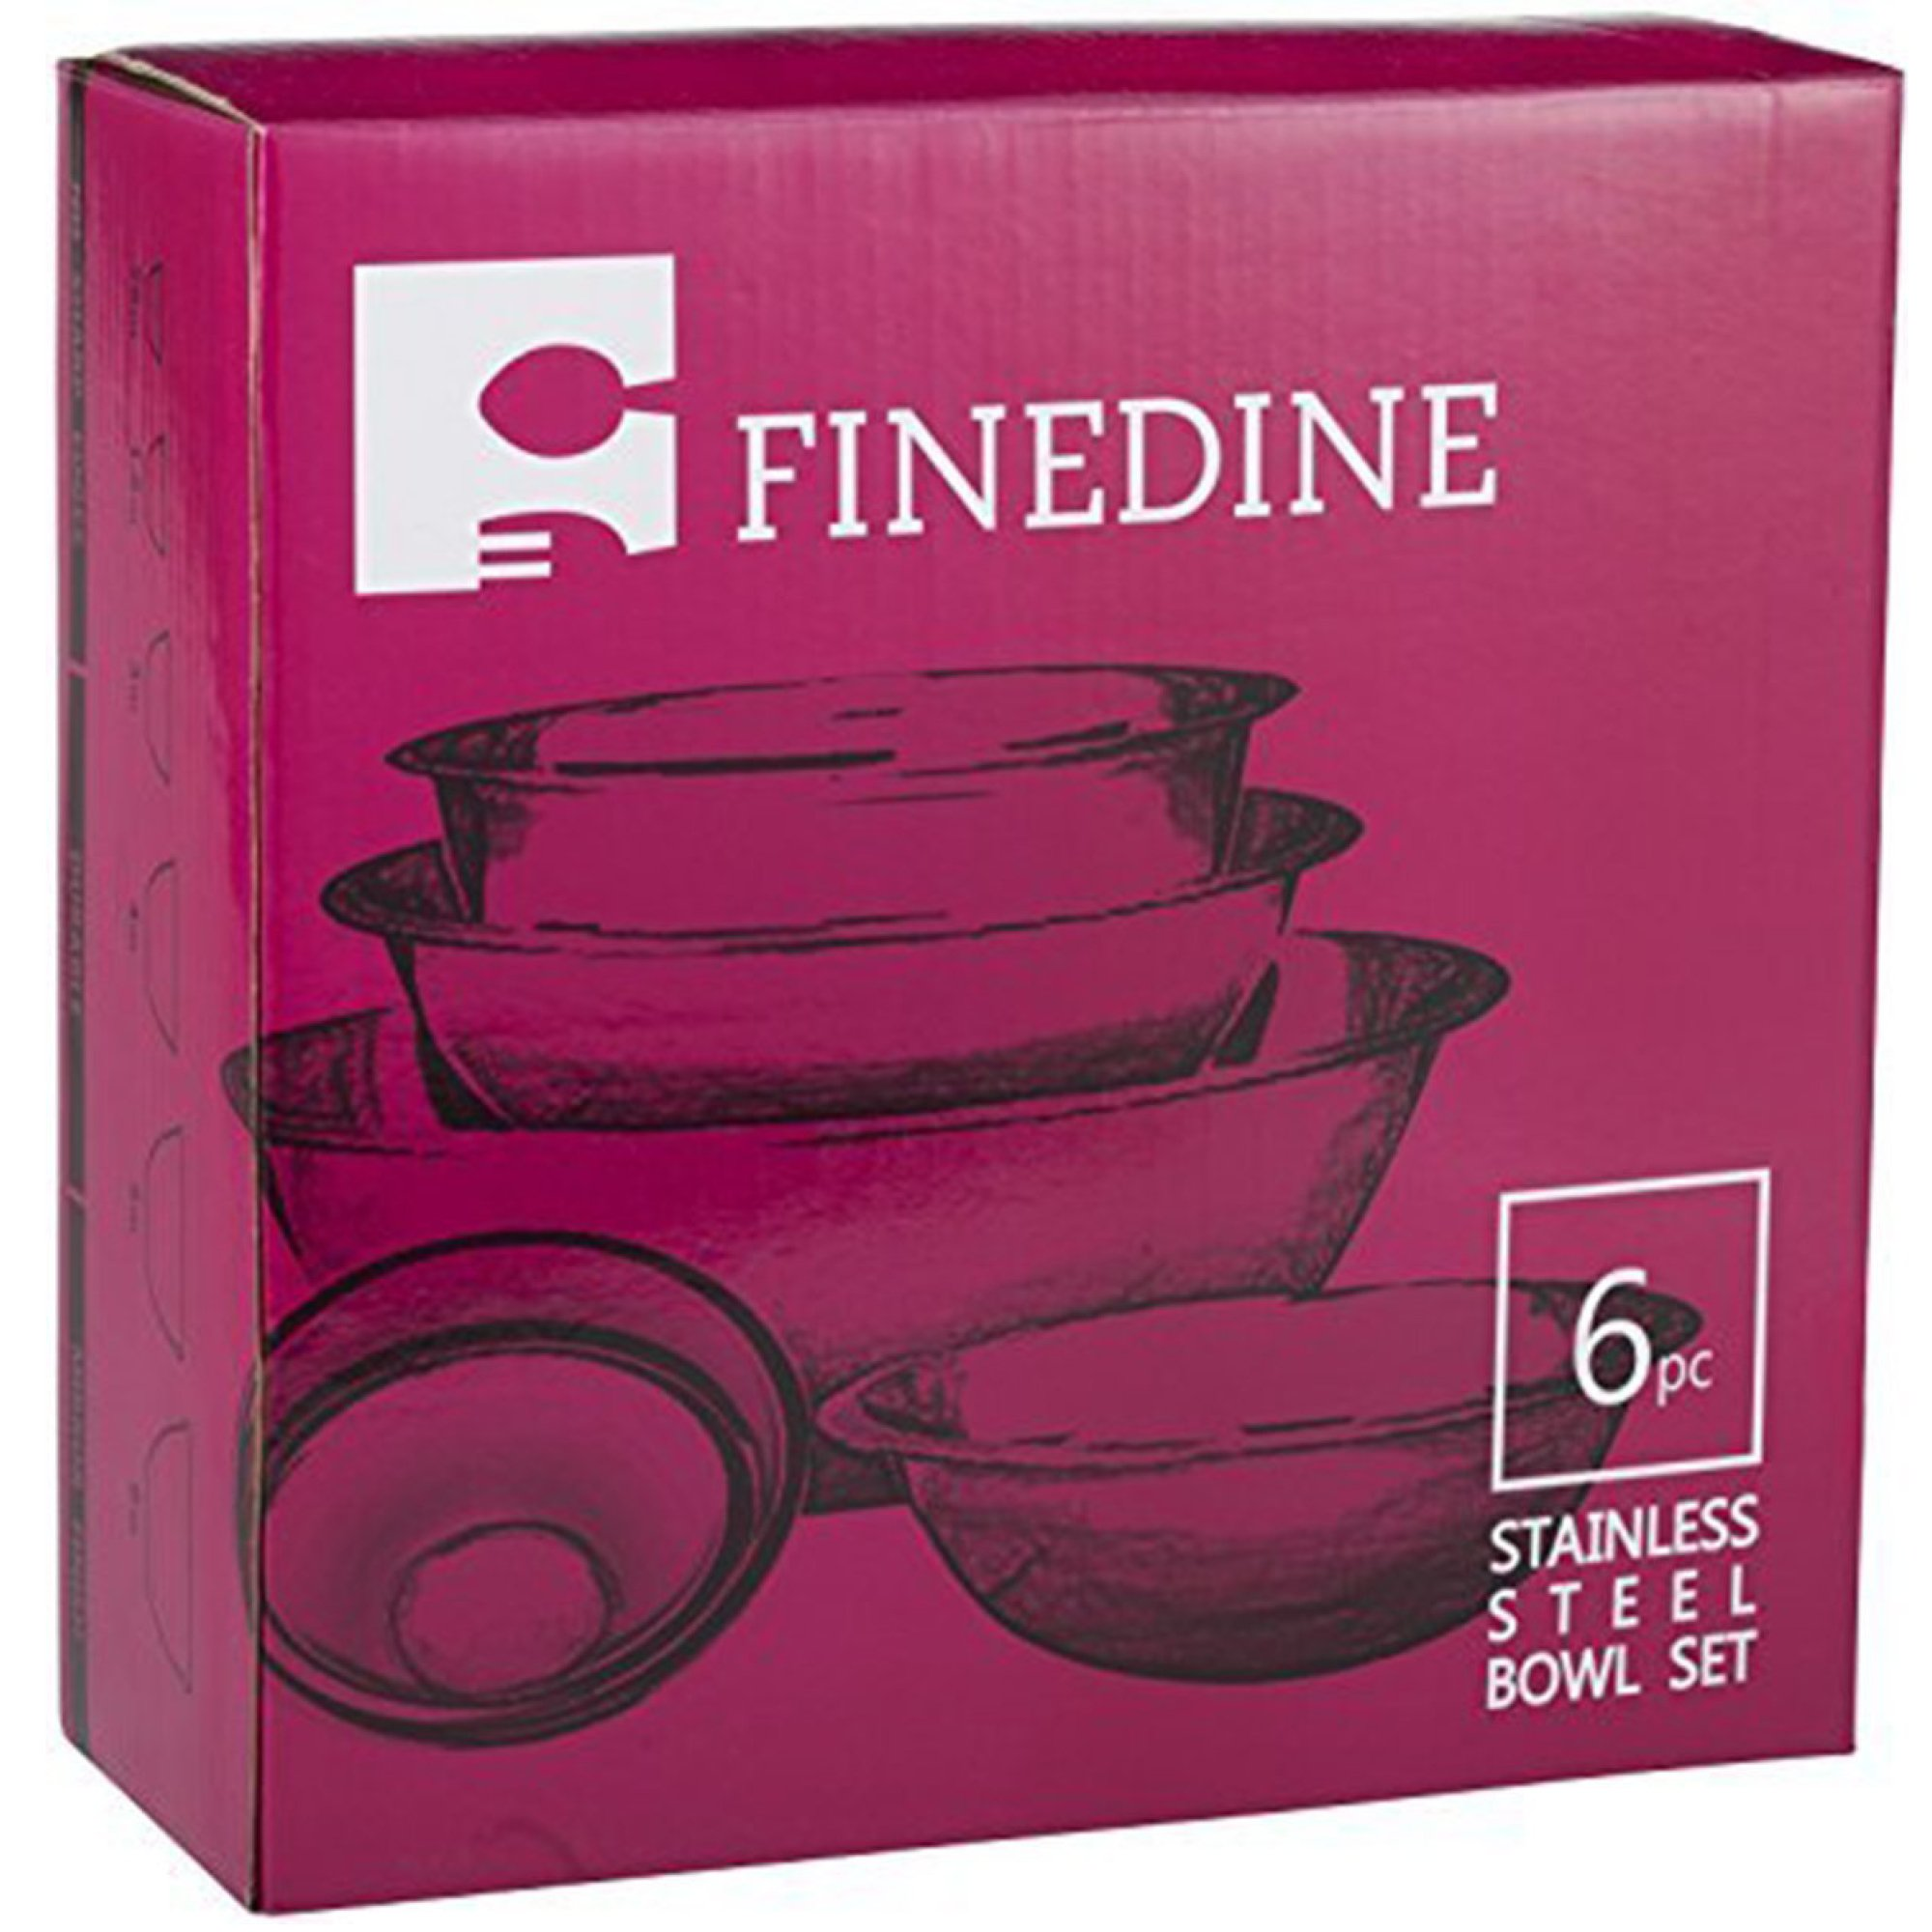 Stainless Steel Mixing Bowls by Finedine (Set of 6) Polished Mirror Finish Nesting Bowl, ¾ - 1.5-3 - 4-5 - 8 Quart - Cooking Supplies by FINEDINE (Image #7)